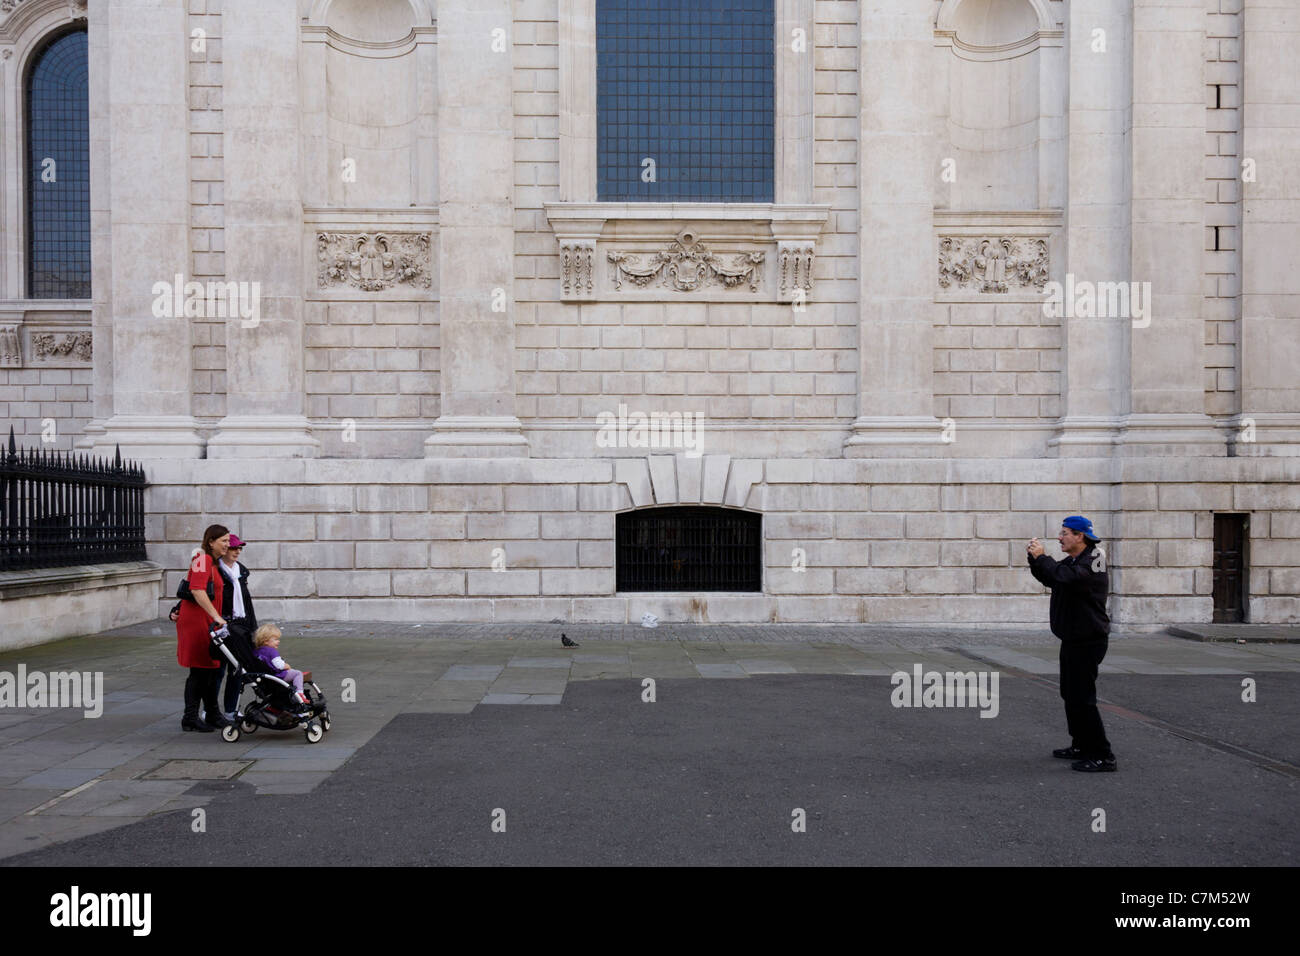 A tourist family pose for photos near London's St Paul's Cathedral. - Stock Image